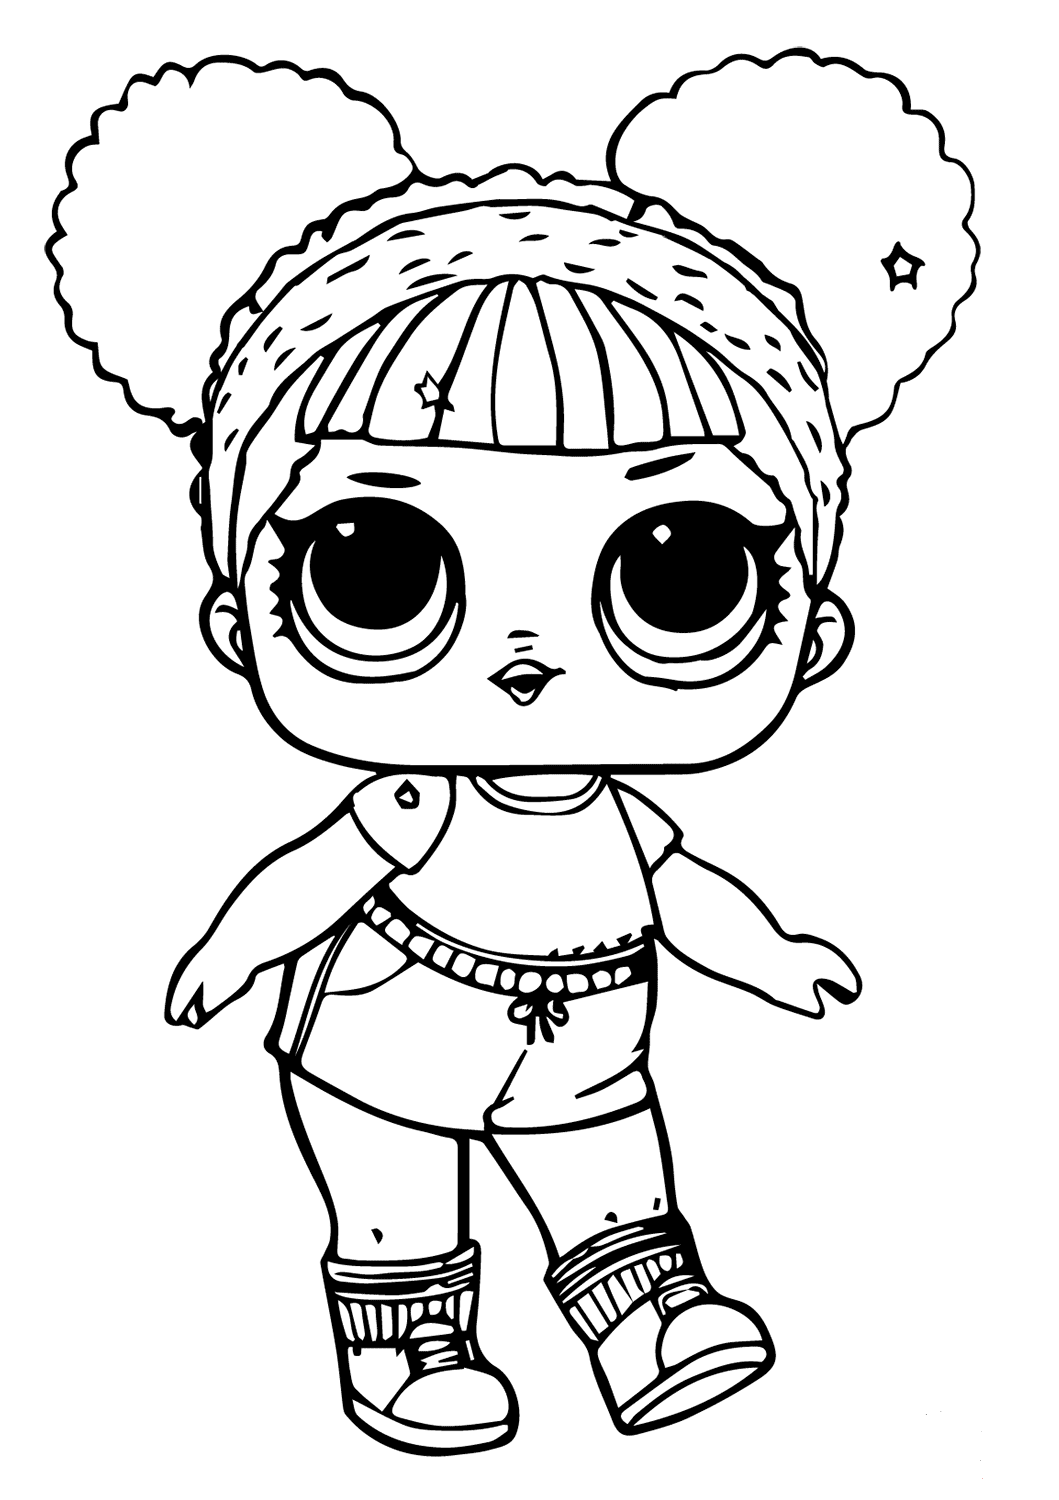 Printable Lol Doll Coloring Pages Hoops Mvp Glitter Hello Kitty Coloring Spiderman Coloring Lol Dolls